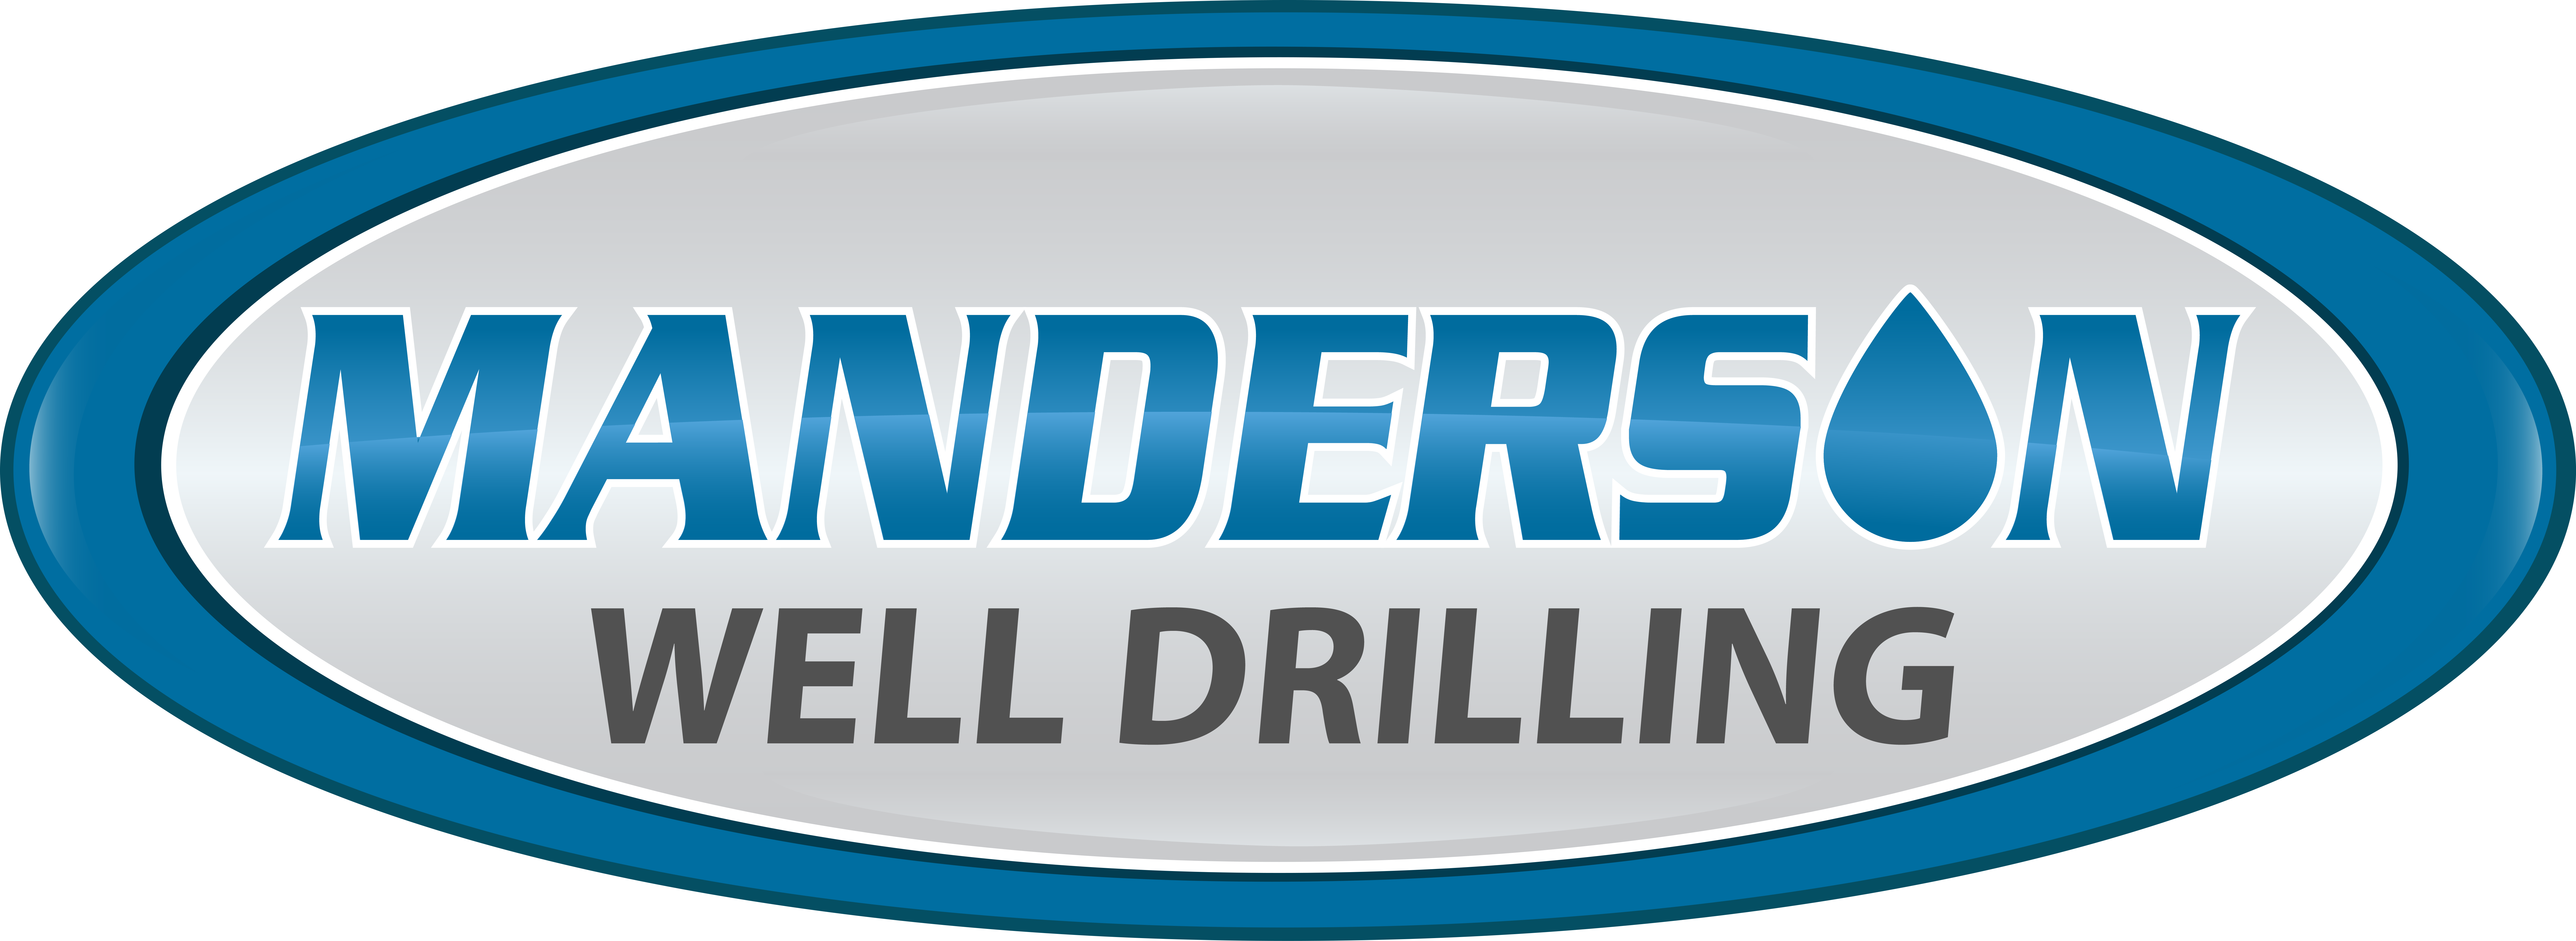 Manderson Well Drilling